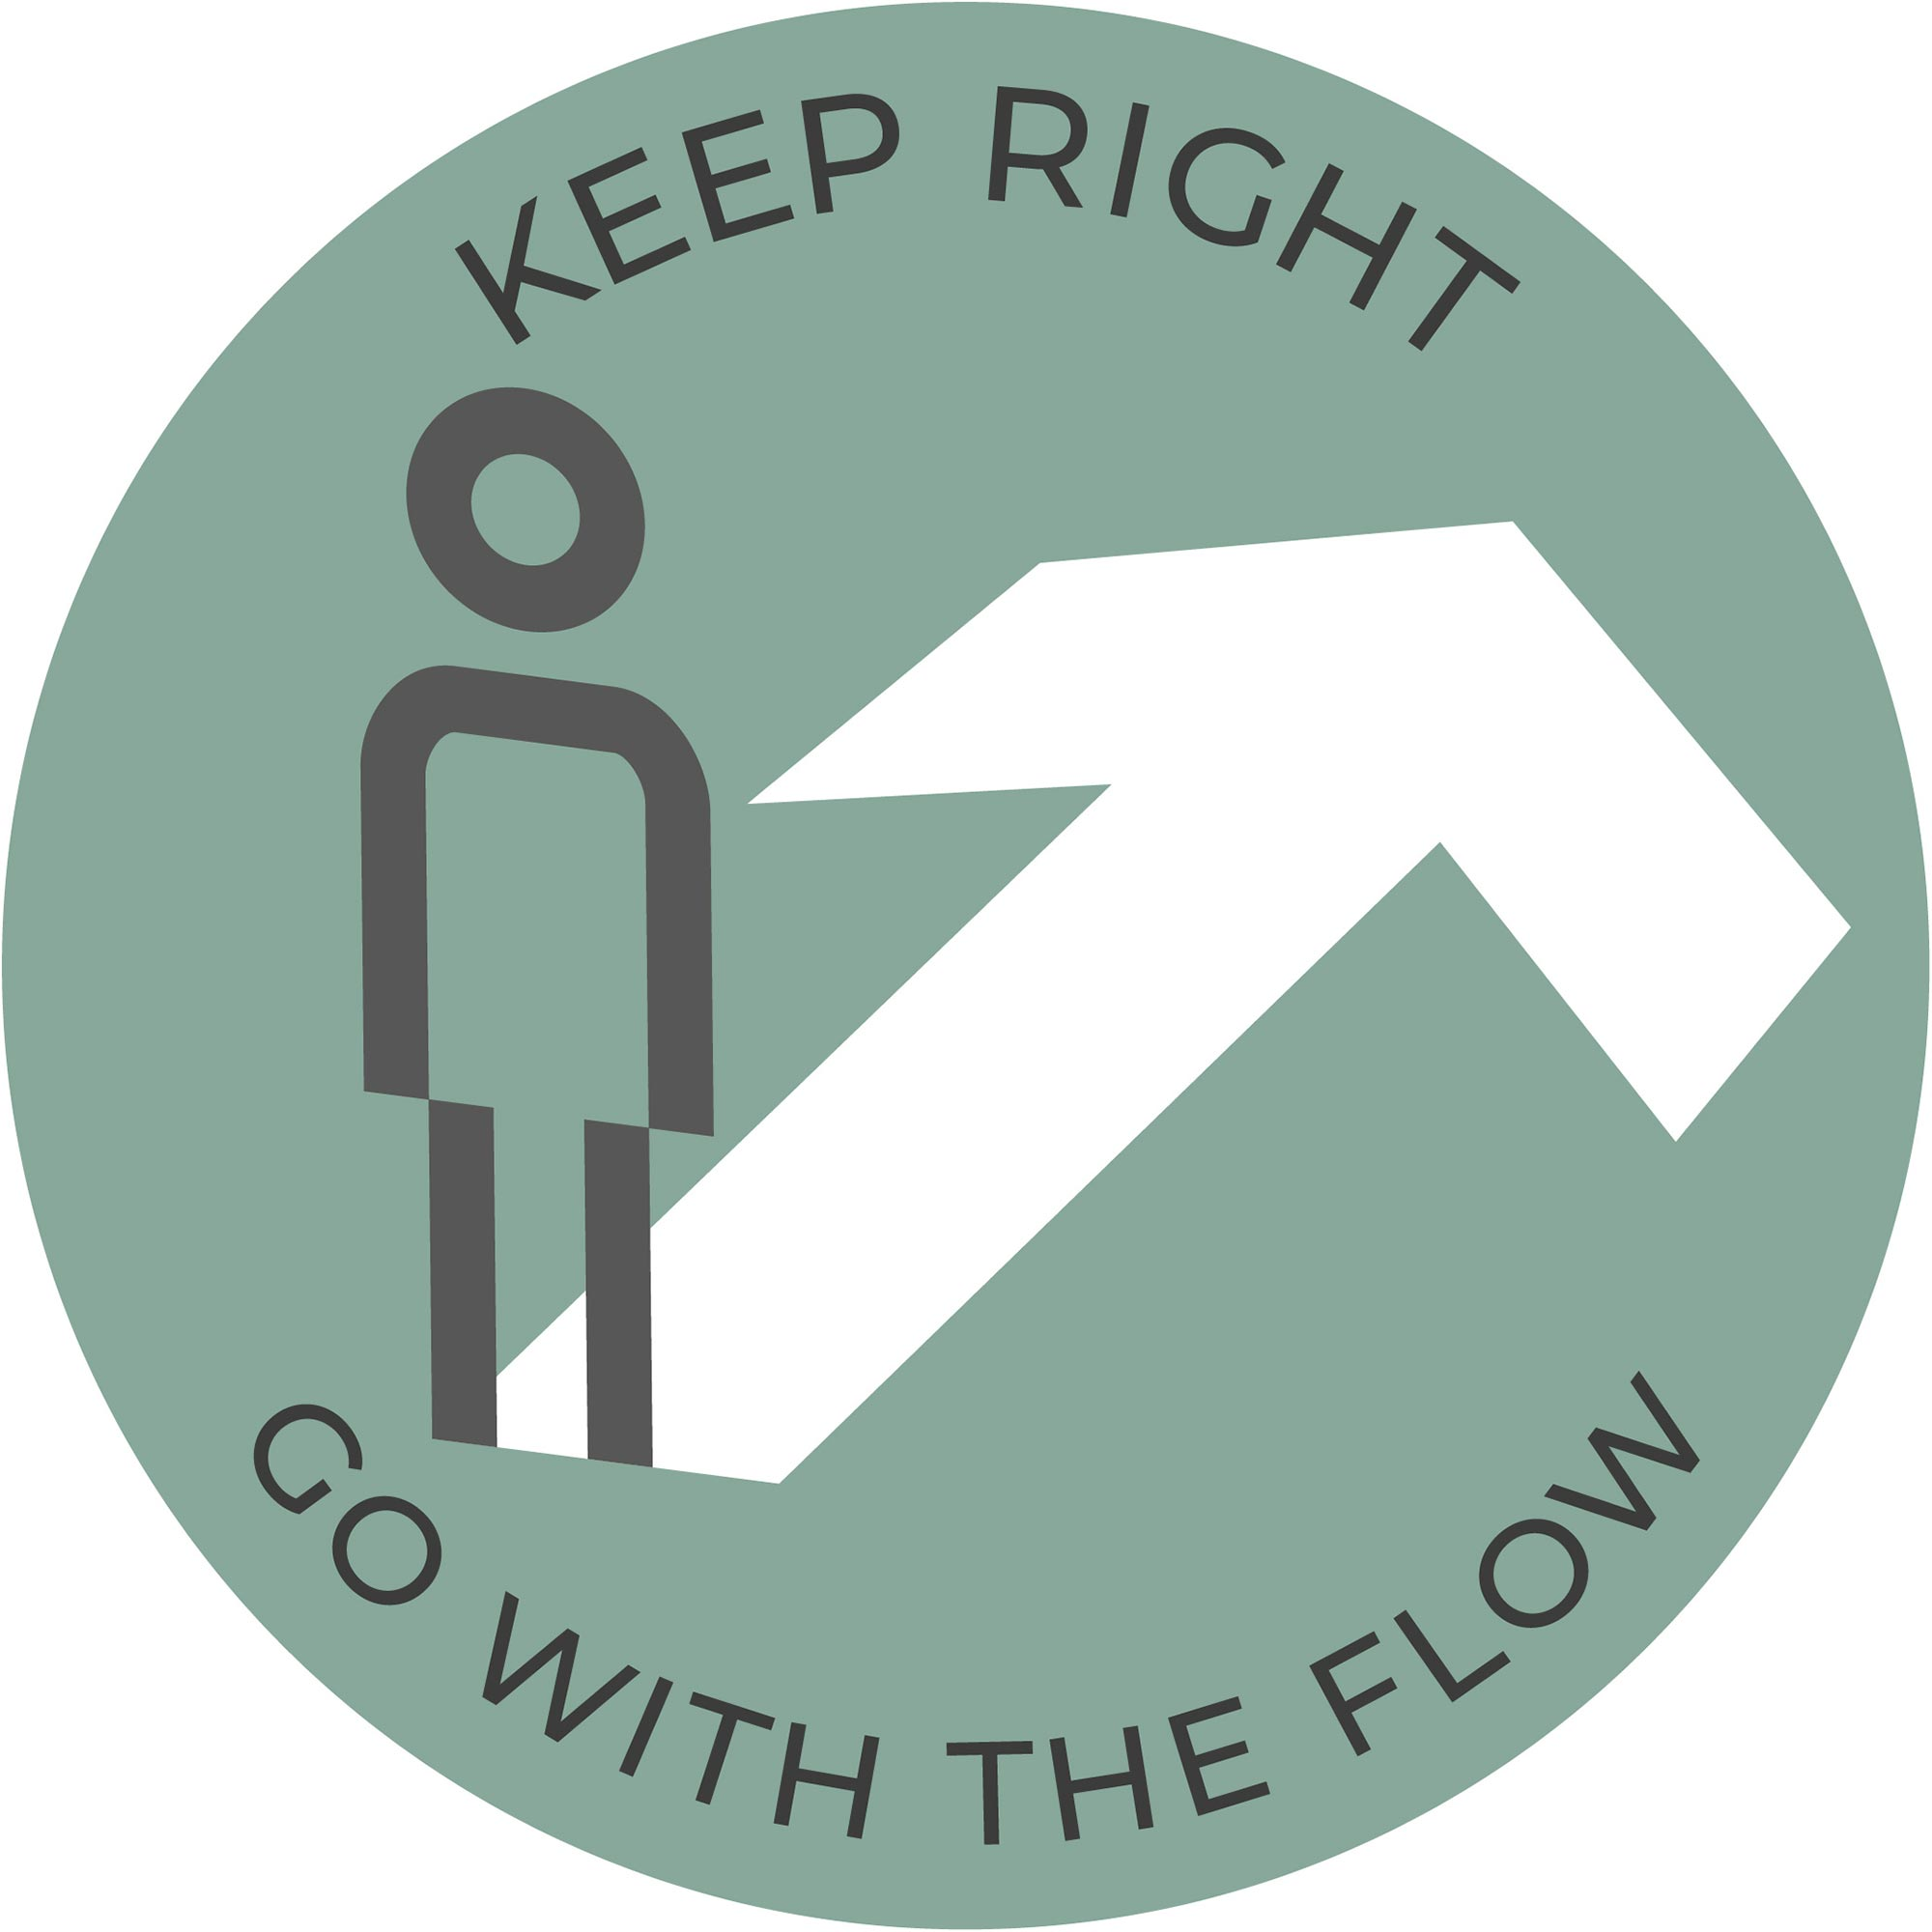 Go with the flow Right - Teal Sticker